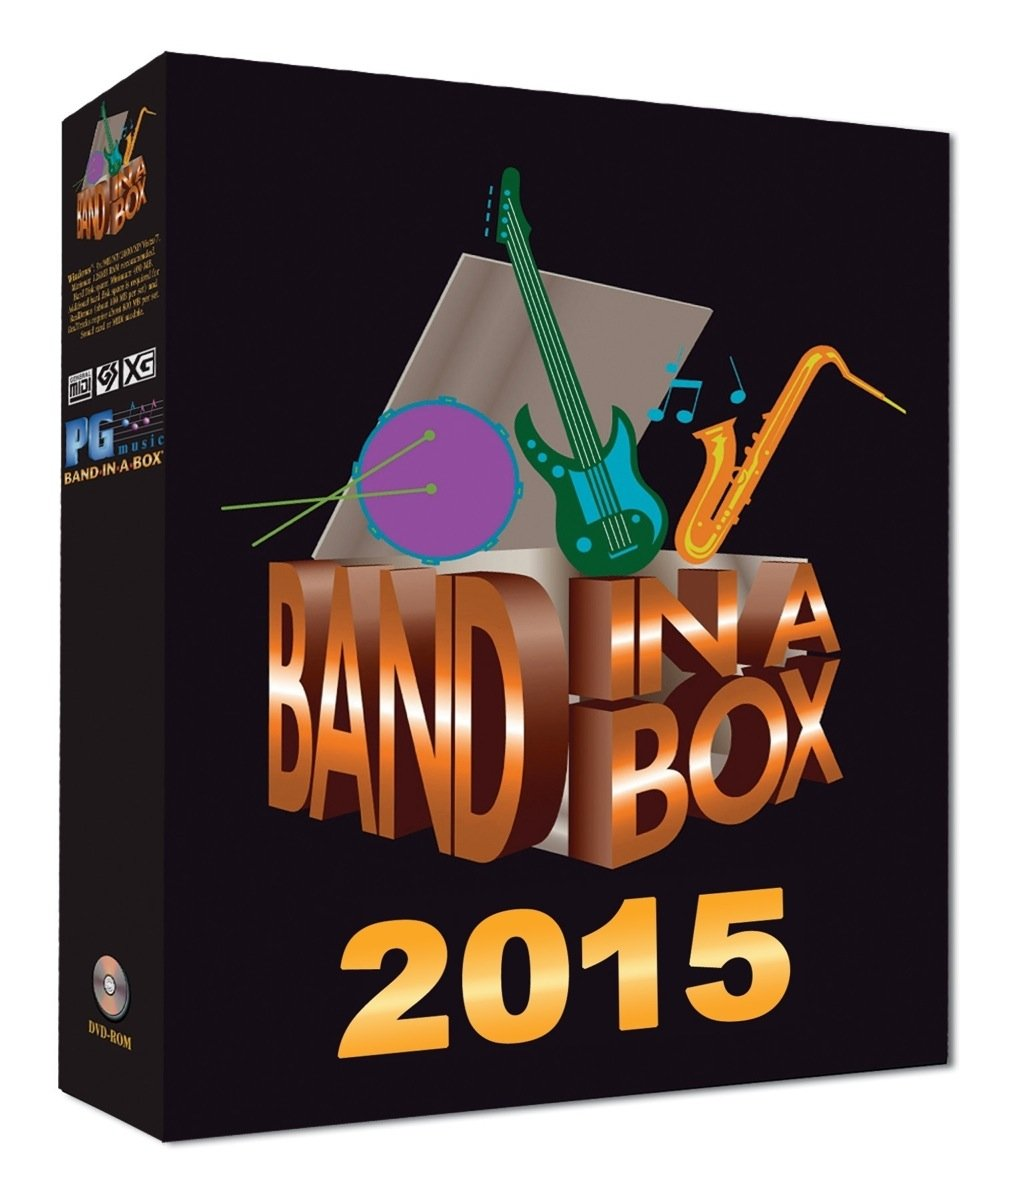 New real book for band in a box